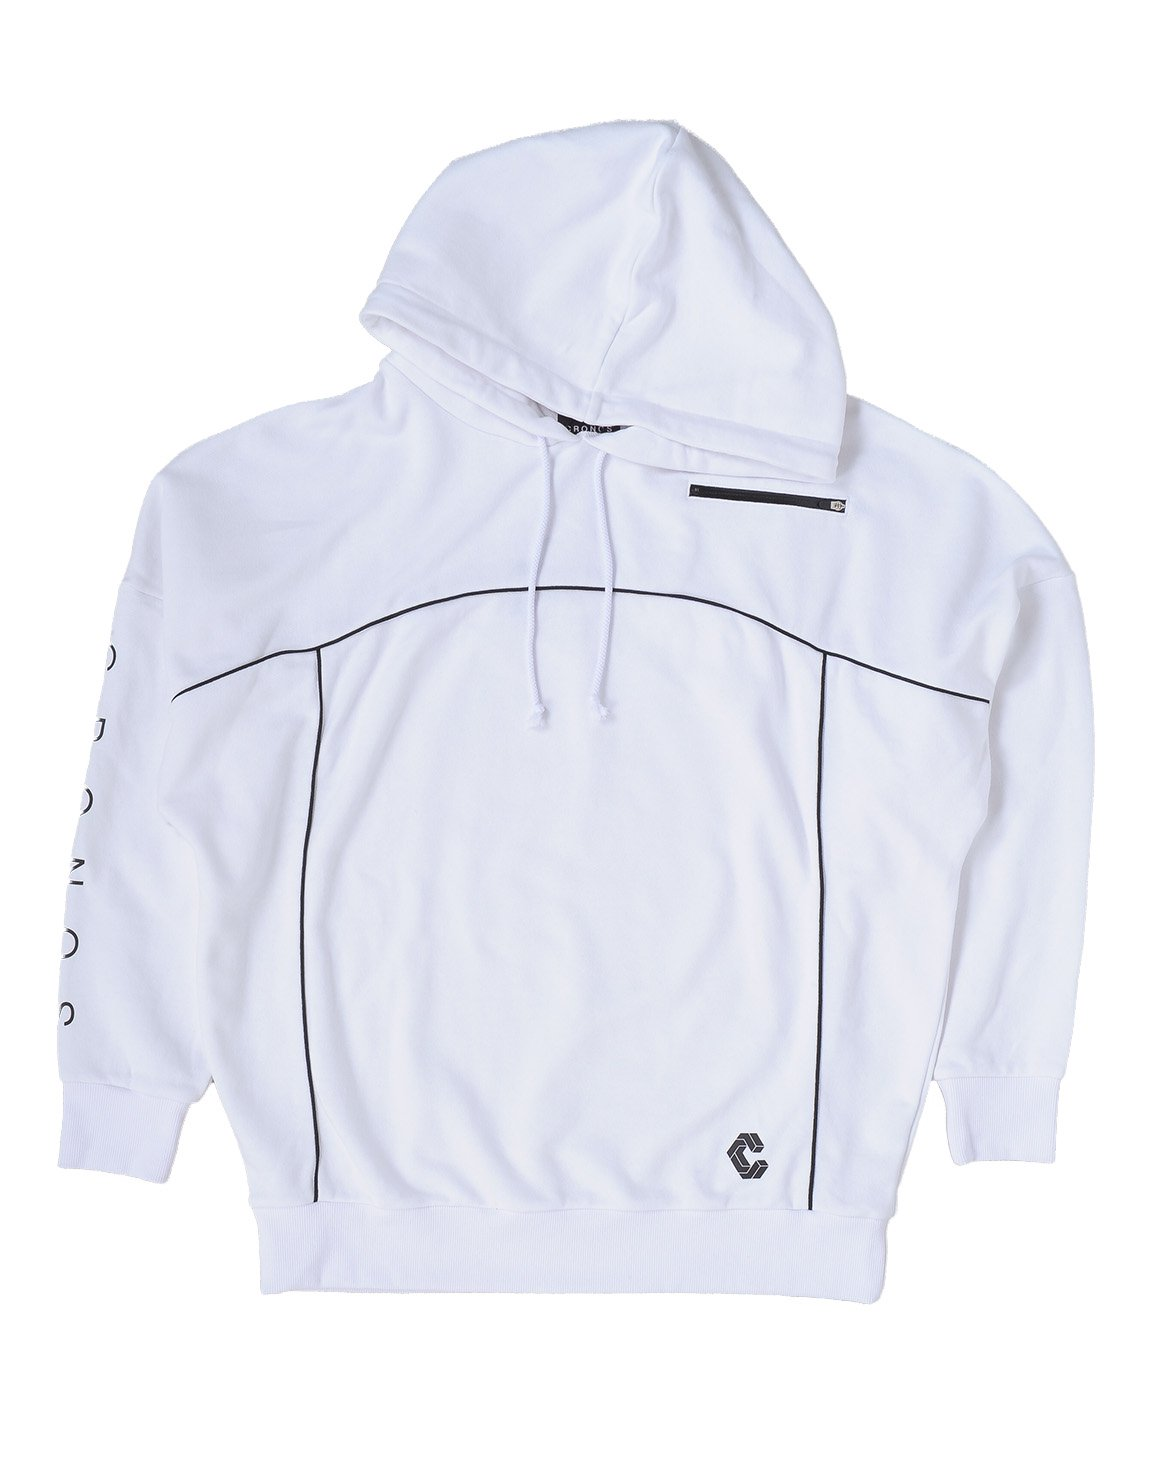 CRONOS ARM LOGO LINE ACCENT BIG SIZE HOODY【WHITE】